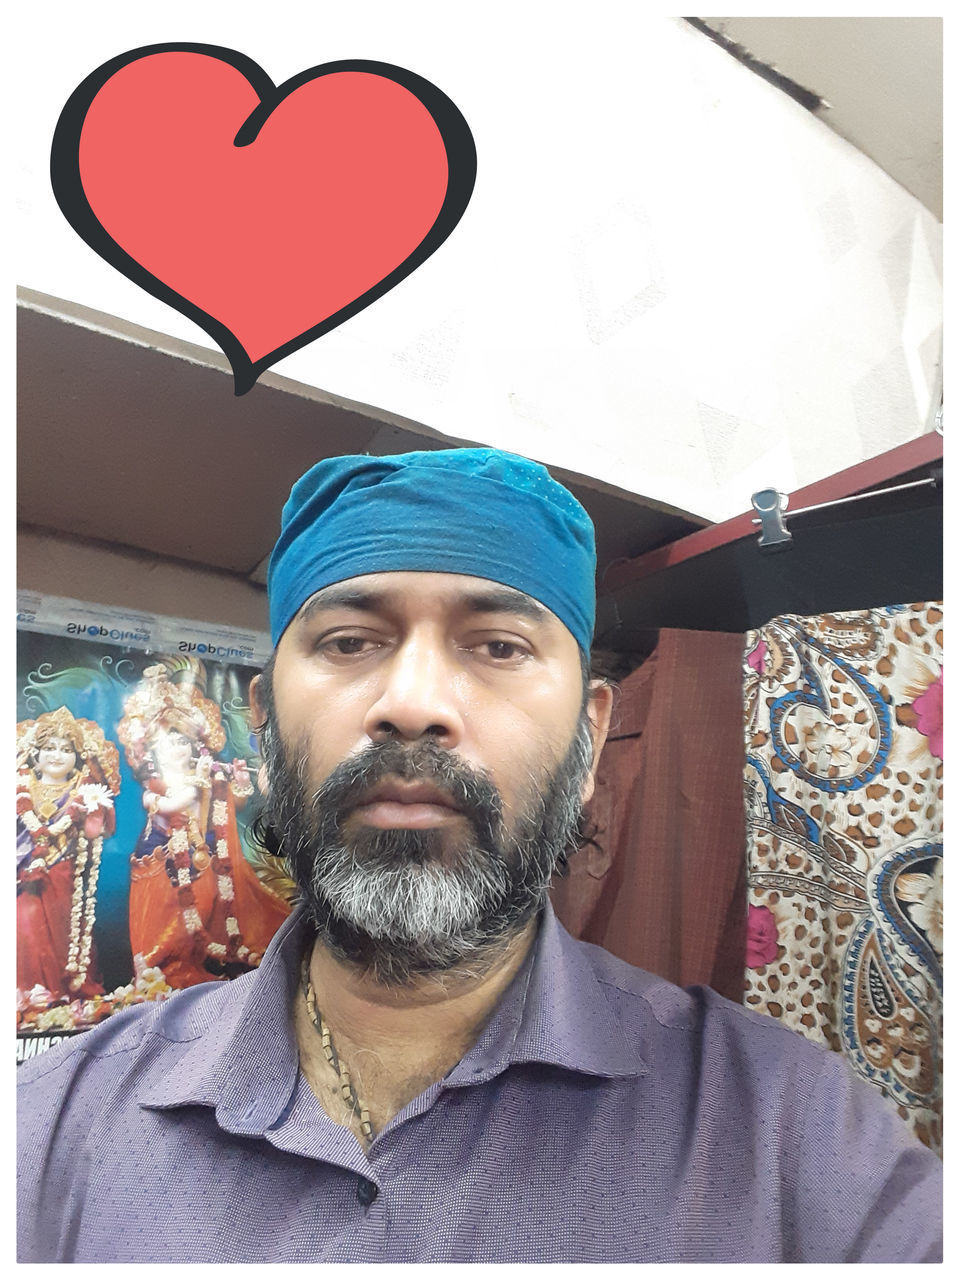 PORTRAIT OF MAN WITH HEART SHAPE IN TRADITIONAL CLOTHING